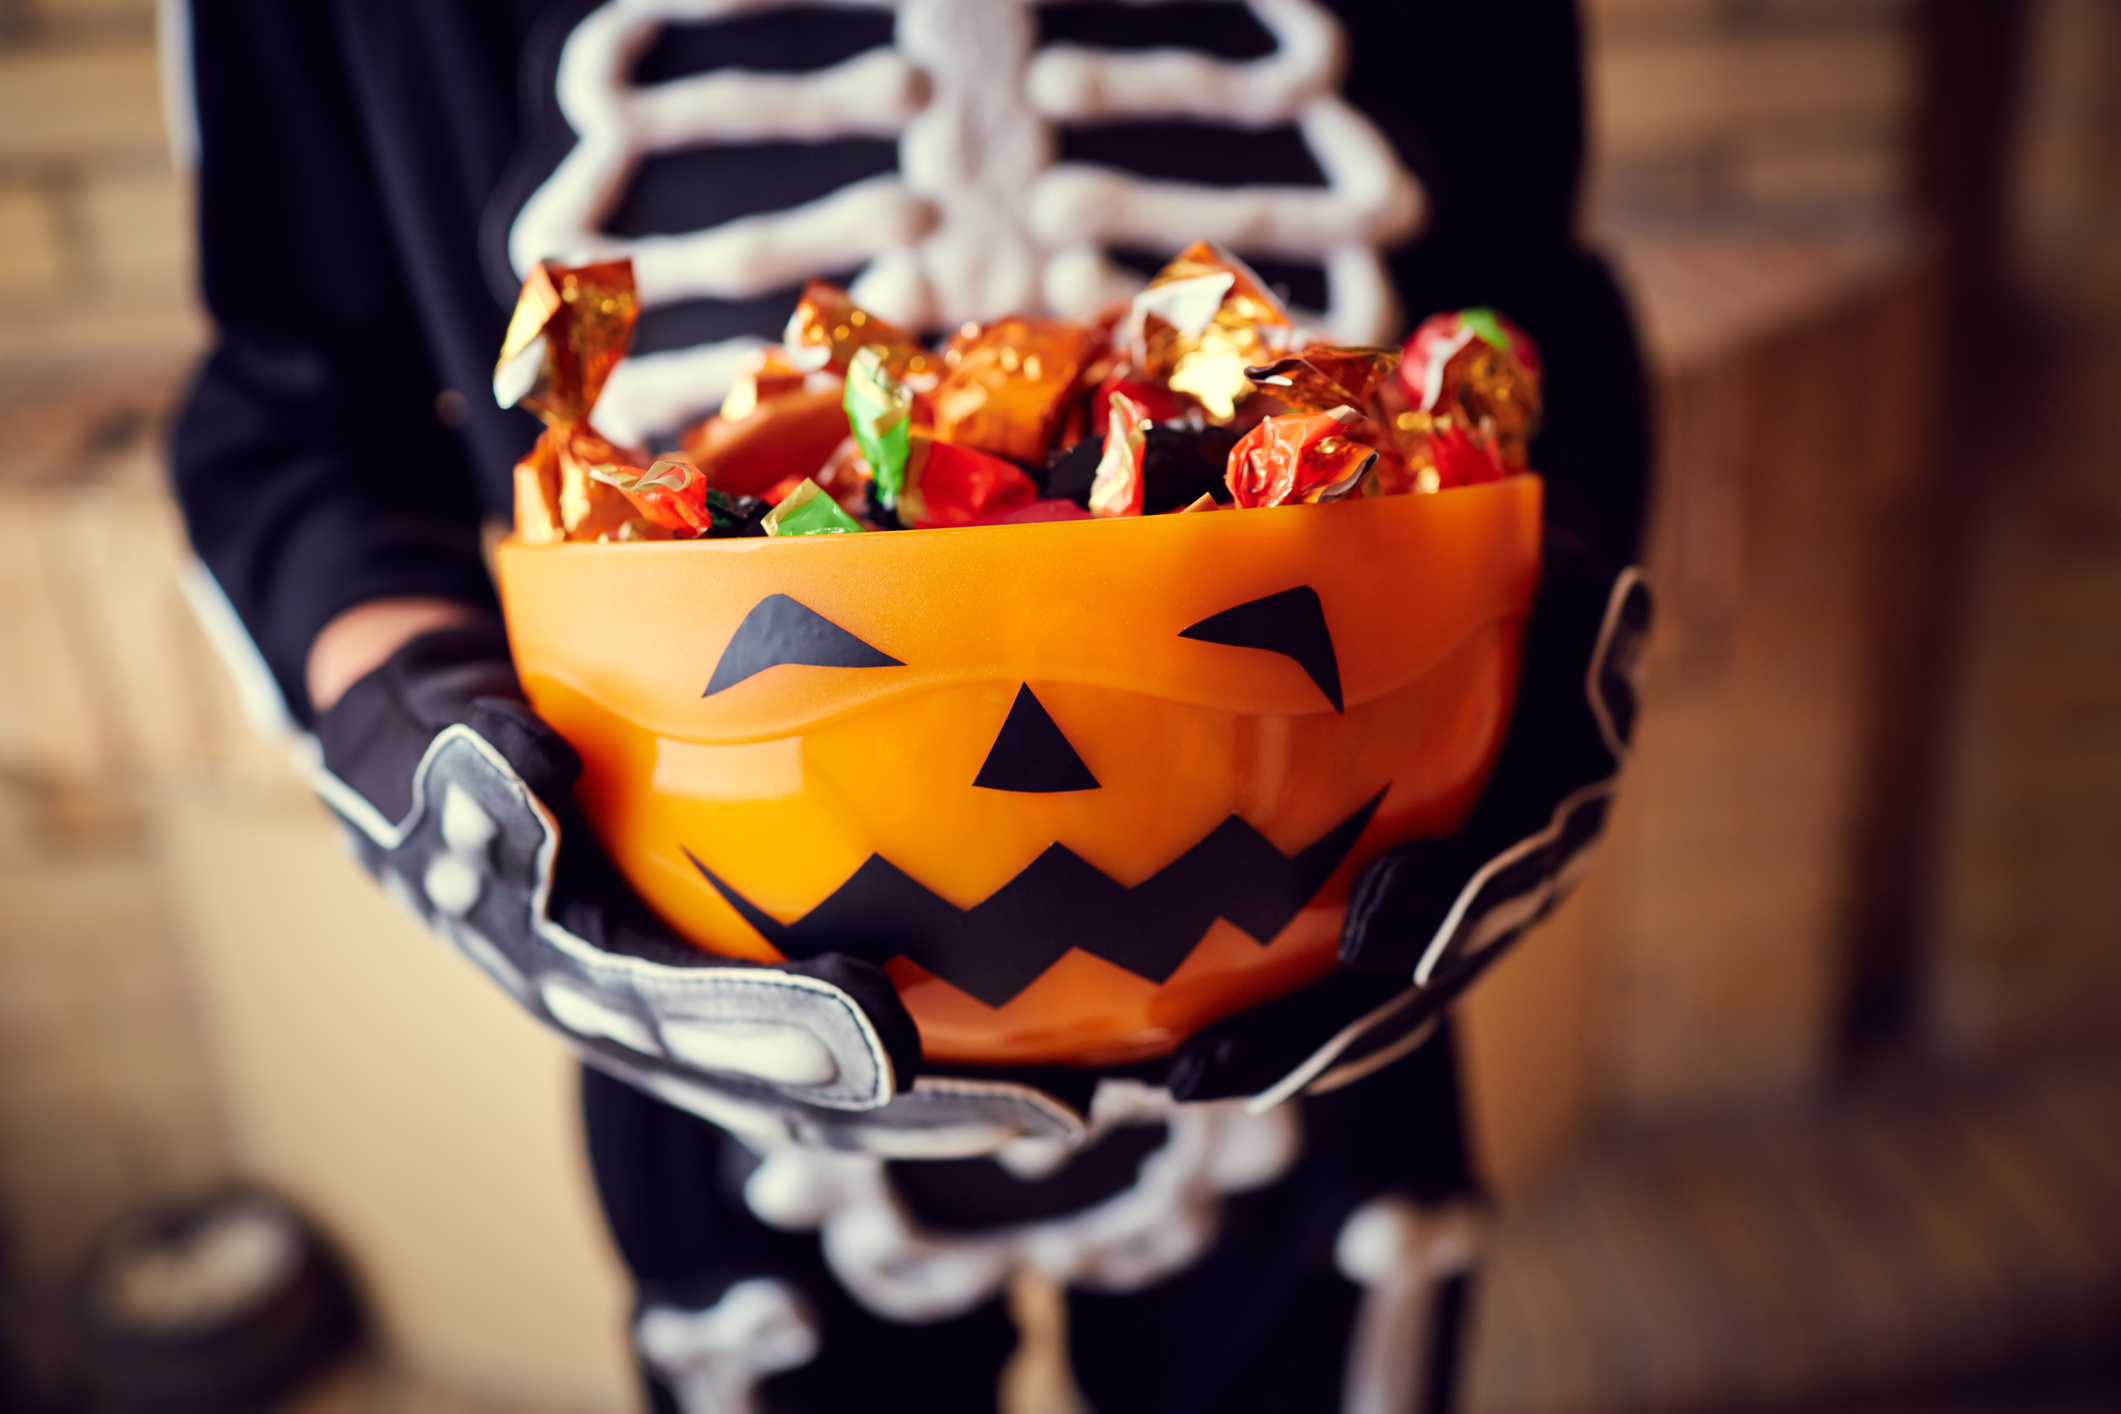 Should you give candy to teenage trick-or-treaters?